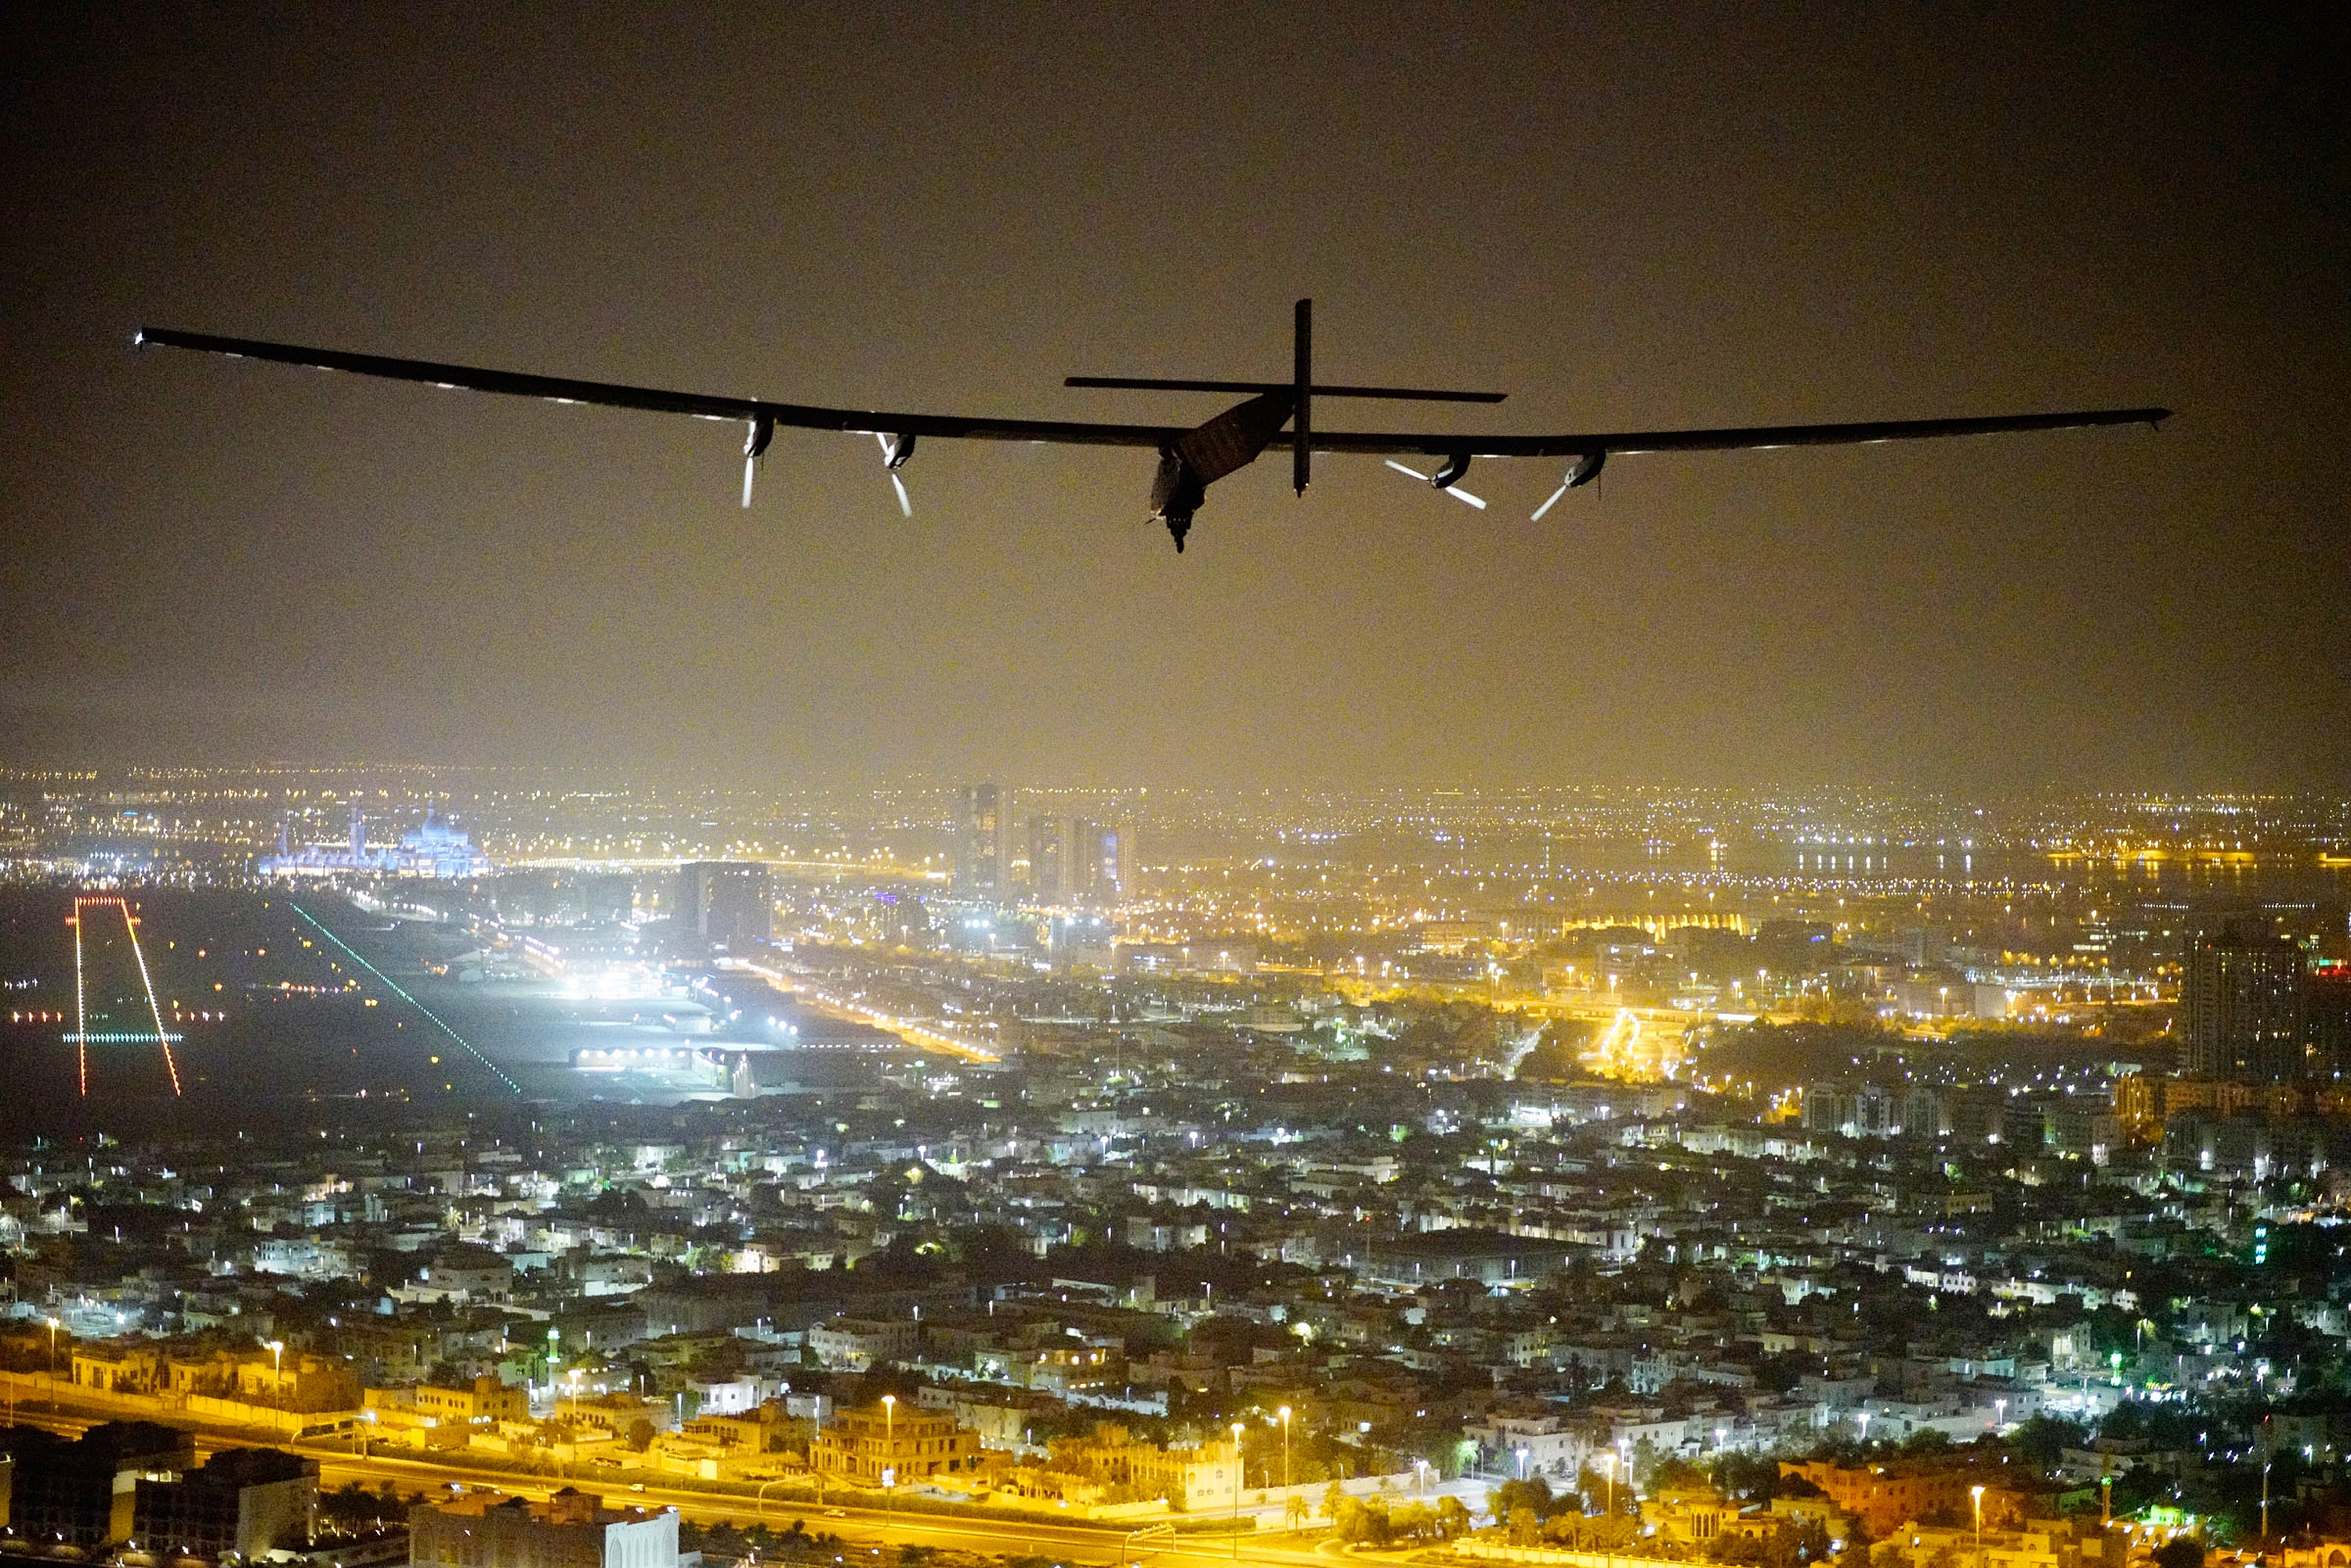 Skydweller is based on the Solar Impulse 2, a solar-powered aircraft developed by Swiss engineers that flew around the world in 17 flights during 2015 and 2016. (Jean Revillard/Solar Impulse2 via Getty Images)